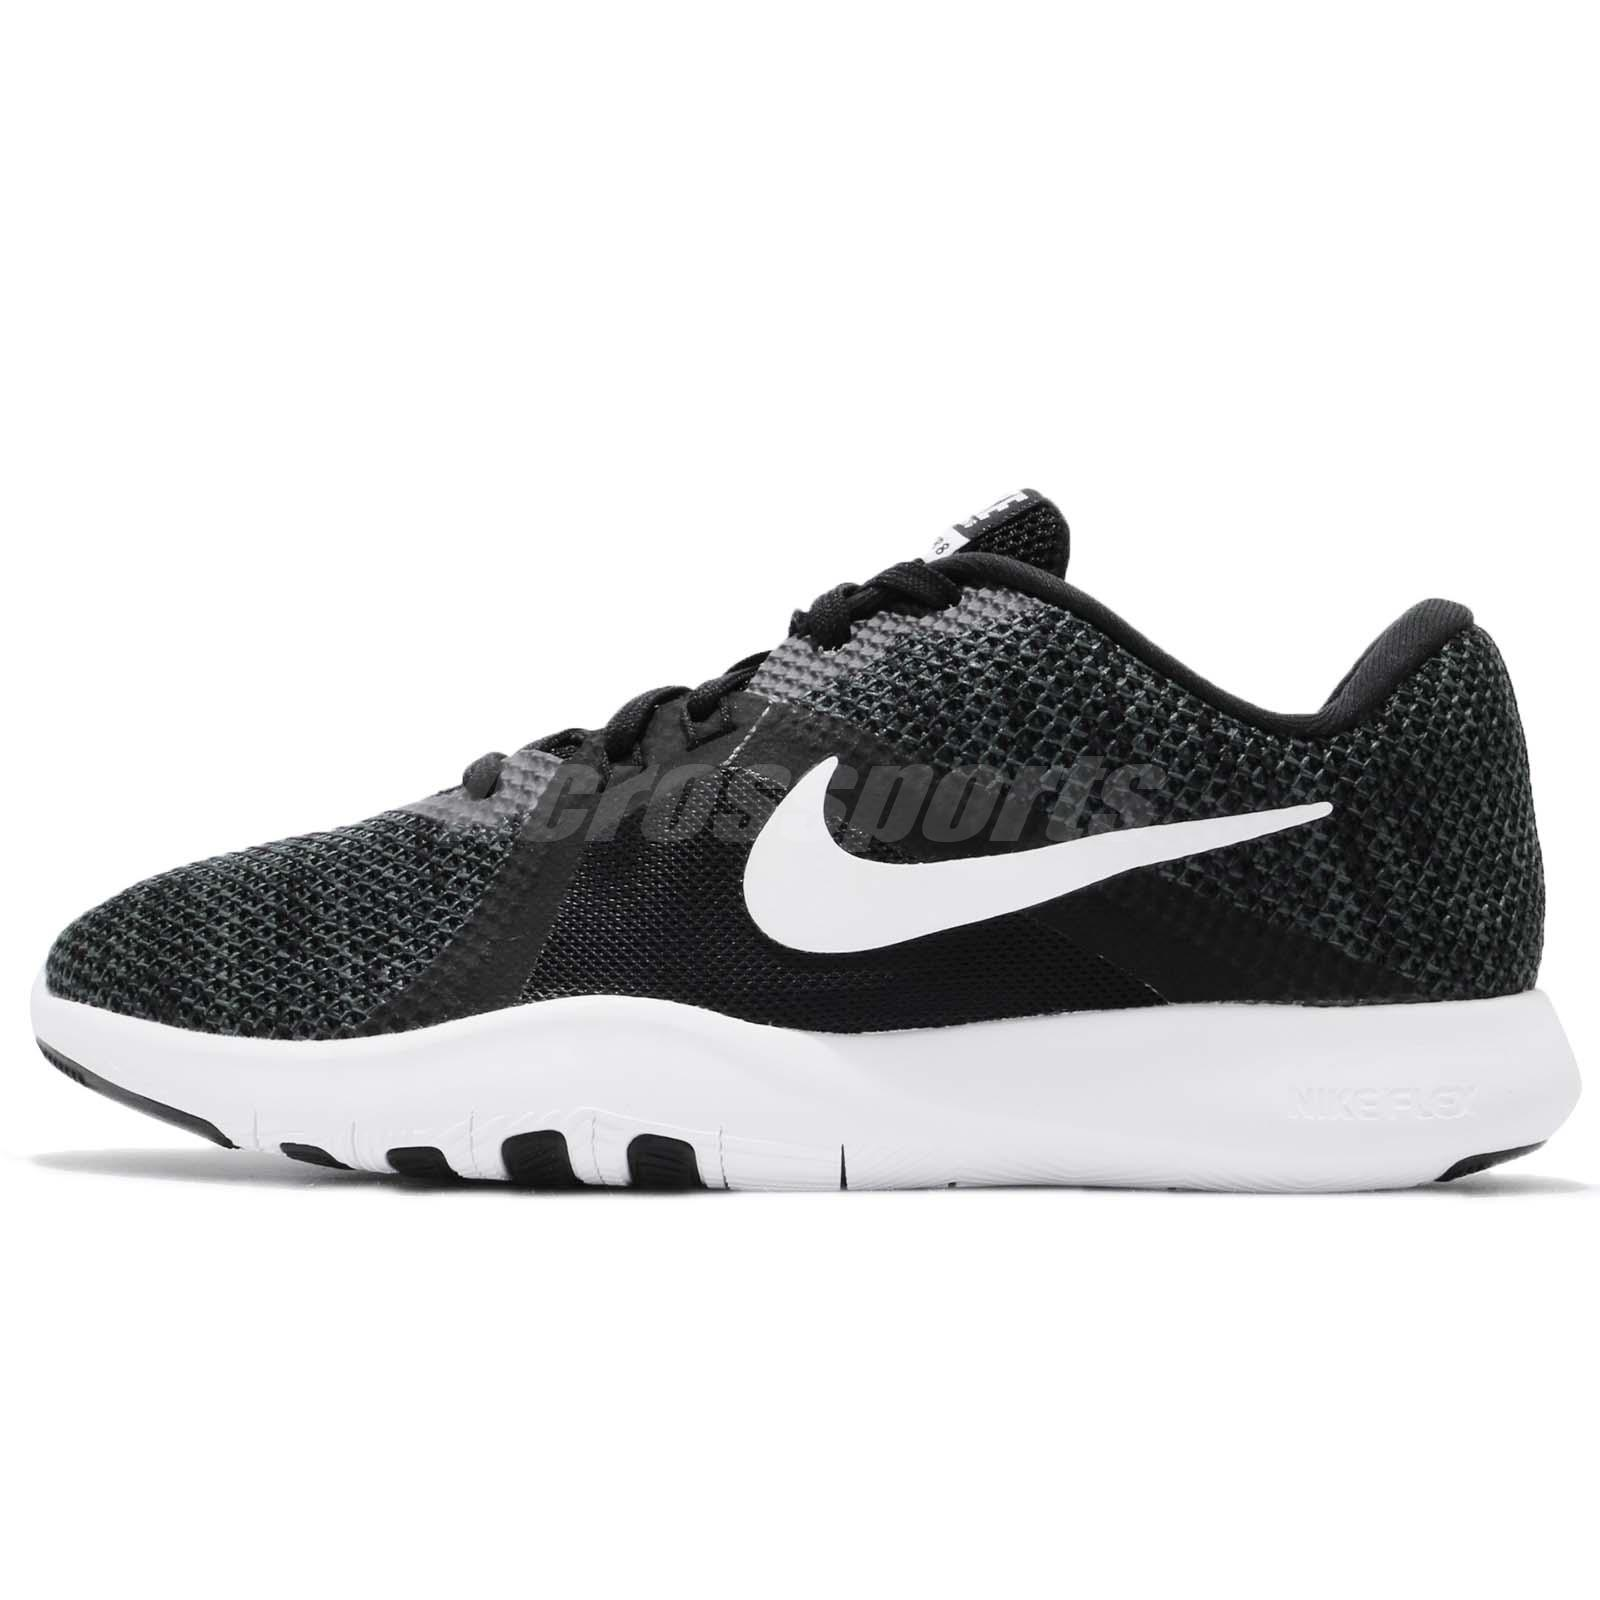 4c6da3a4b4232 Wmns Nike Flex Trainer 8 VIII Black White Women Cross Training Shoes 924339- 001